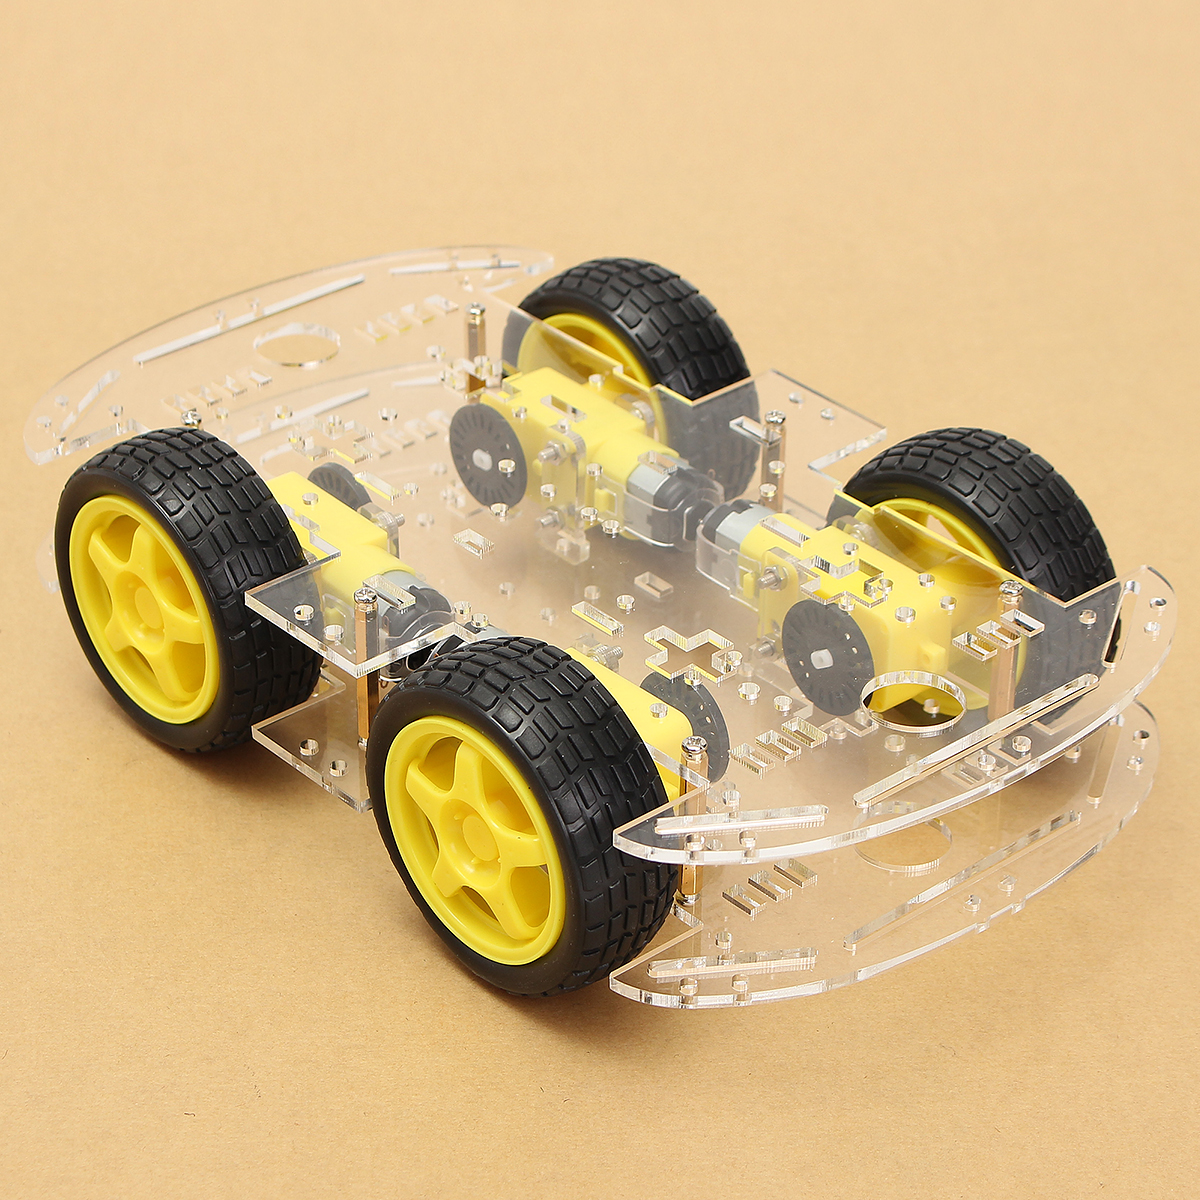 Diy 4wd Smart Robot Car Chassis Kits With Magneto Speed